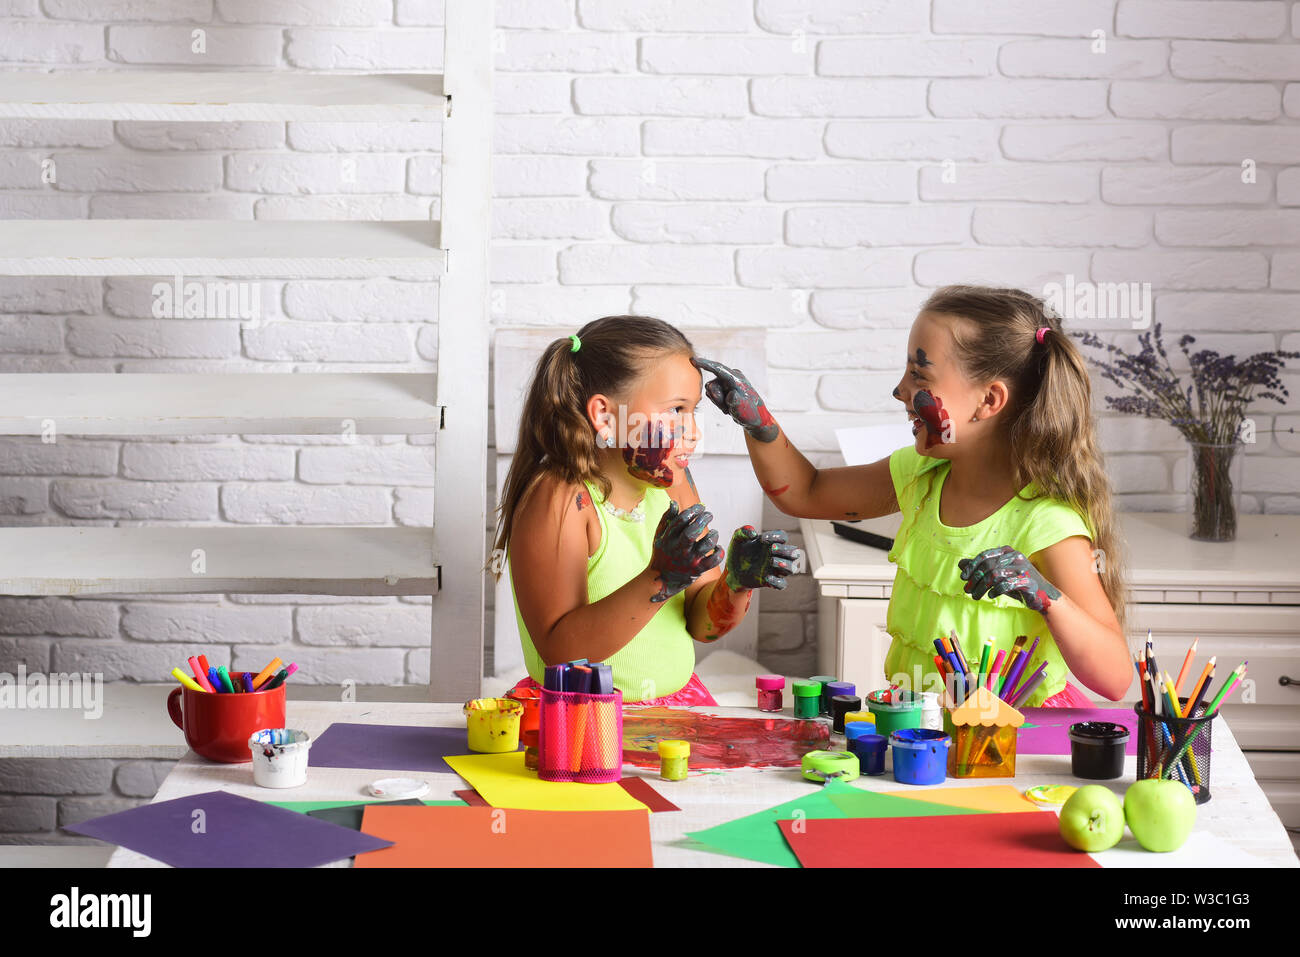 Children Artists With Painted Hands Girls Drawing On Face Skin With Paints Body Art And Painting Kids Learning And Playing Imagination Creativity Stock Photo Alamy